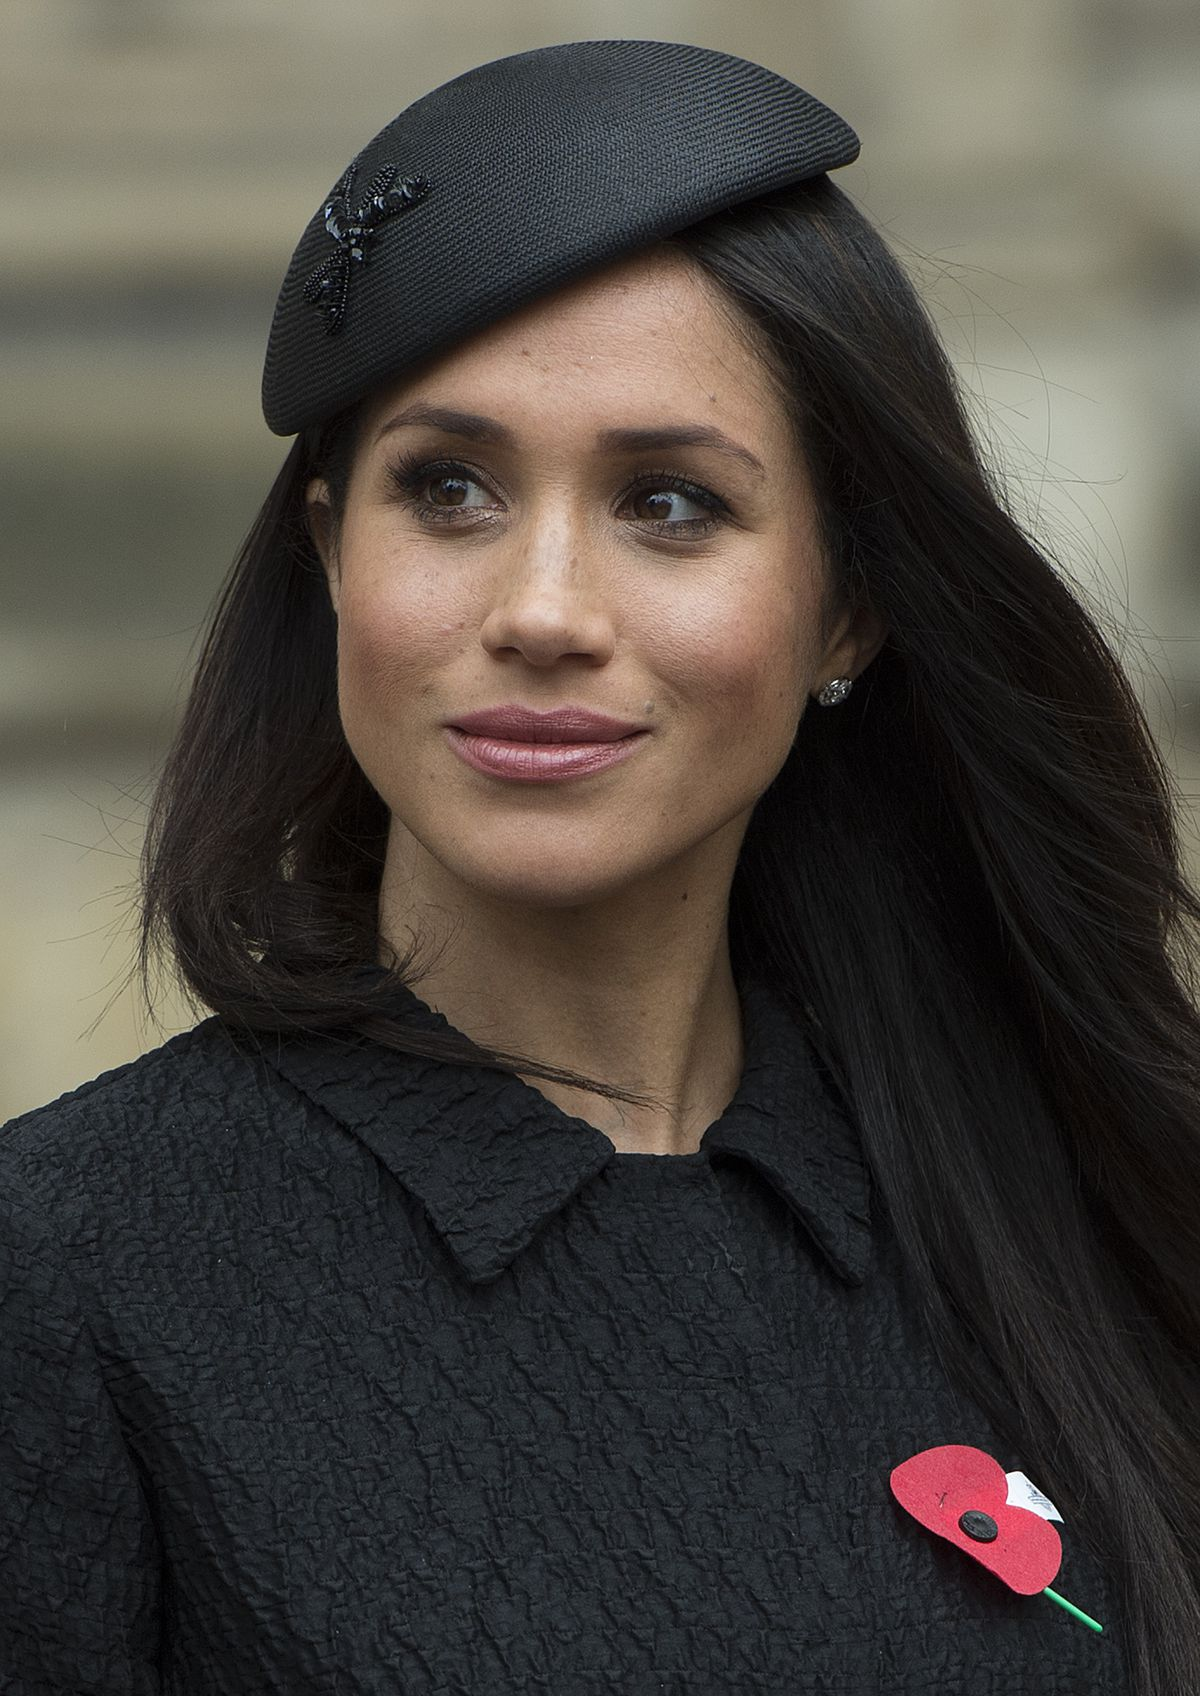 Royal wedding prince harry and meghan markles big day explained vox prince harry and meghan markle attend anzac day services izmirmasajfo